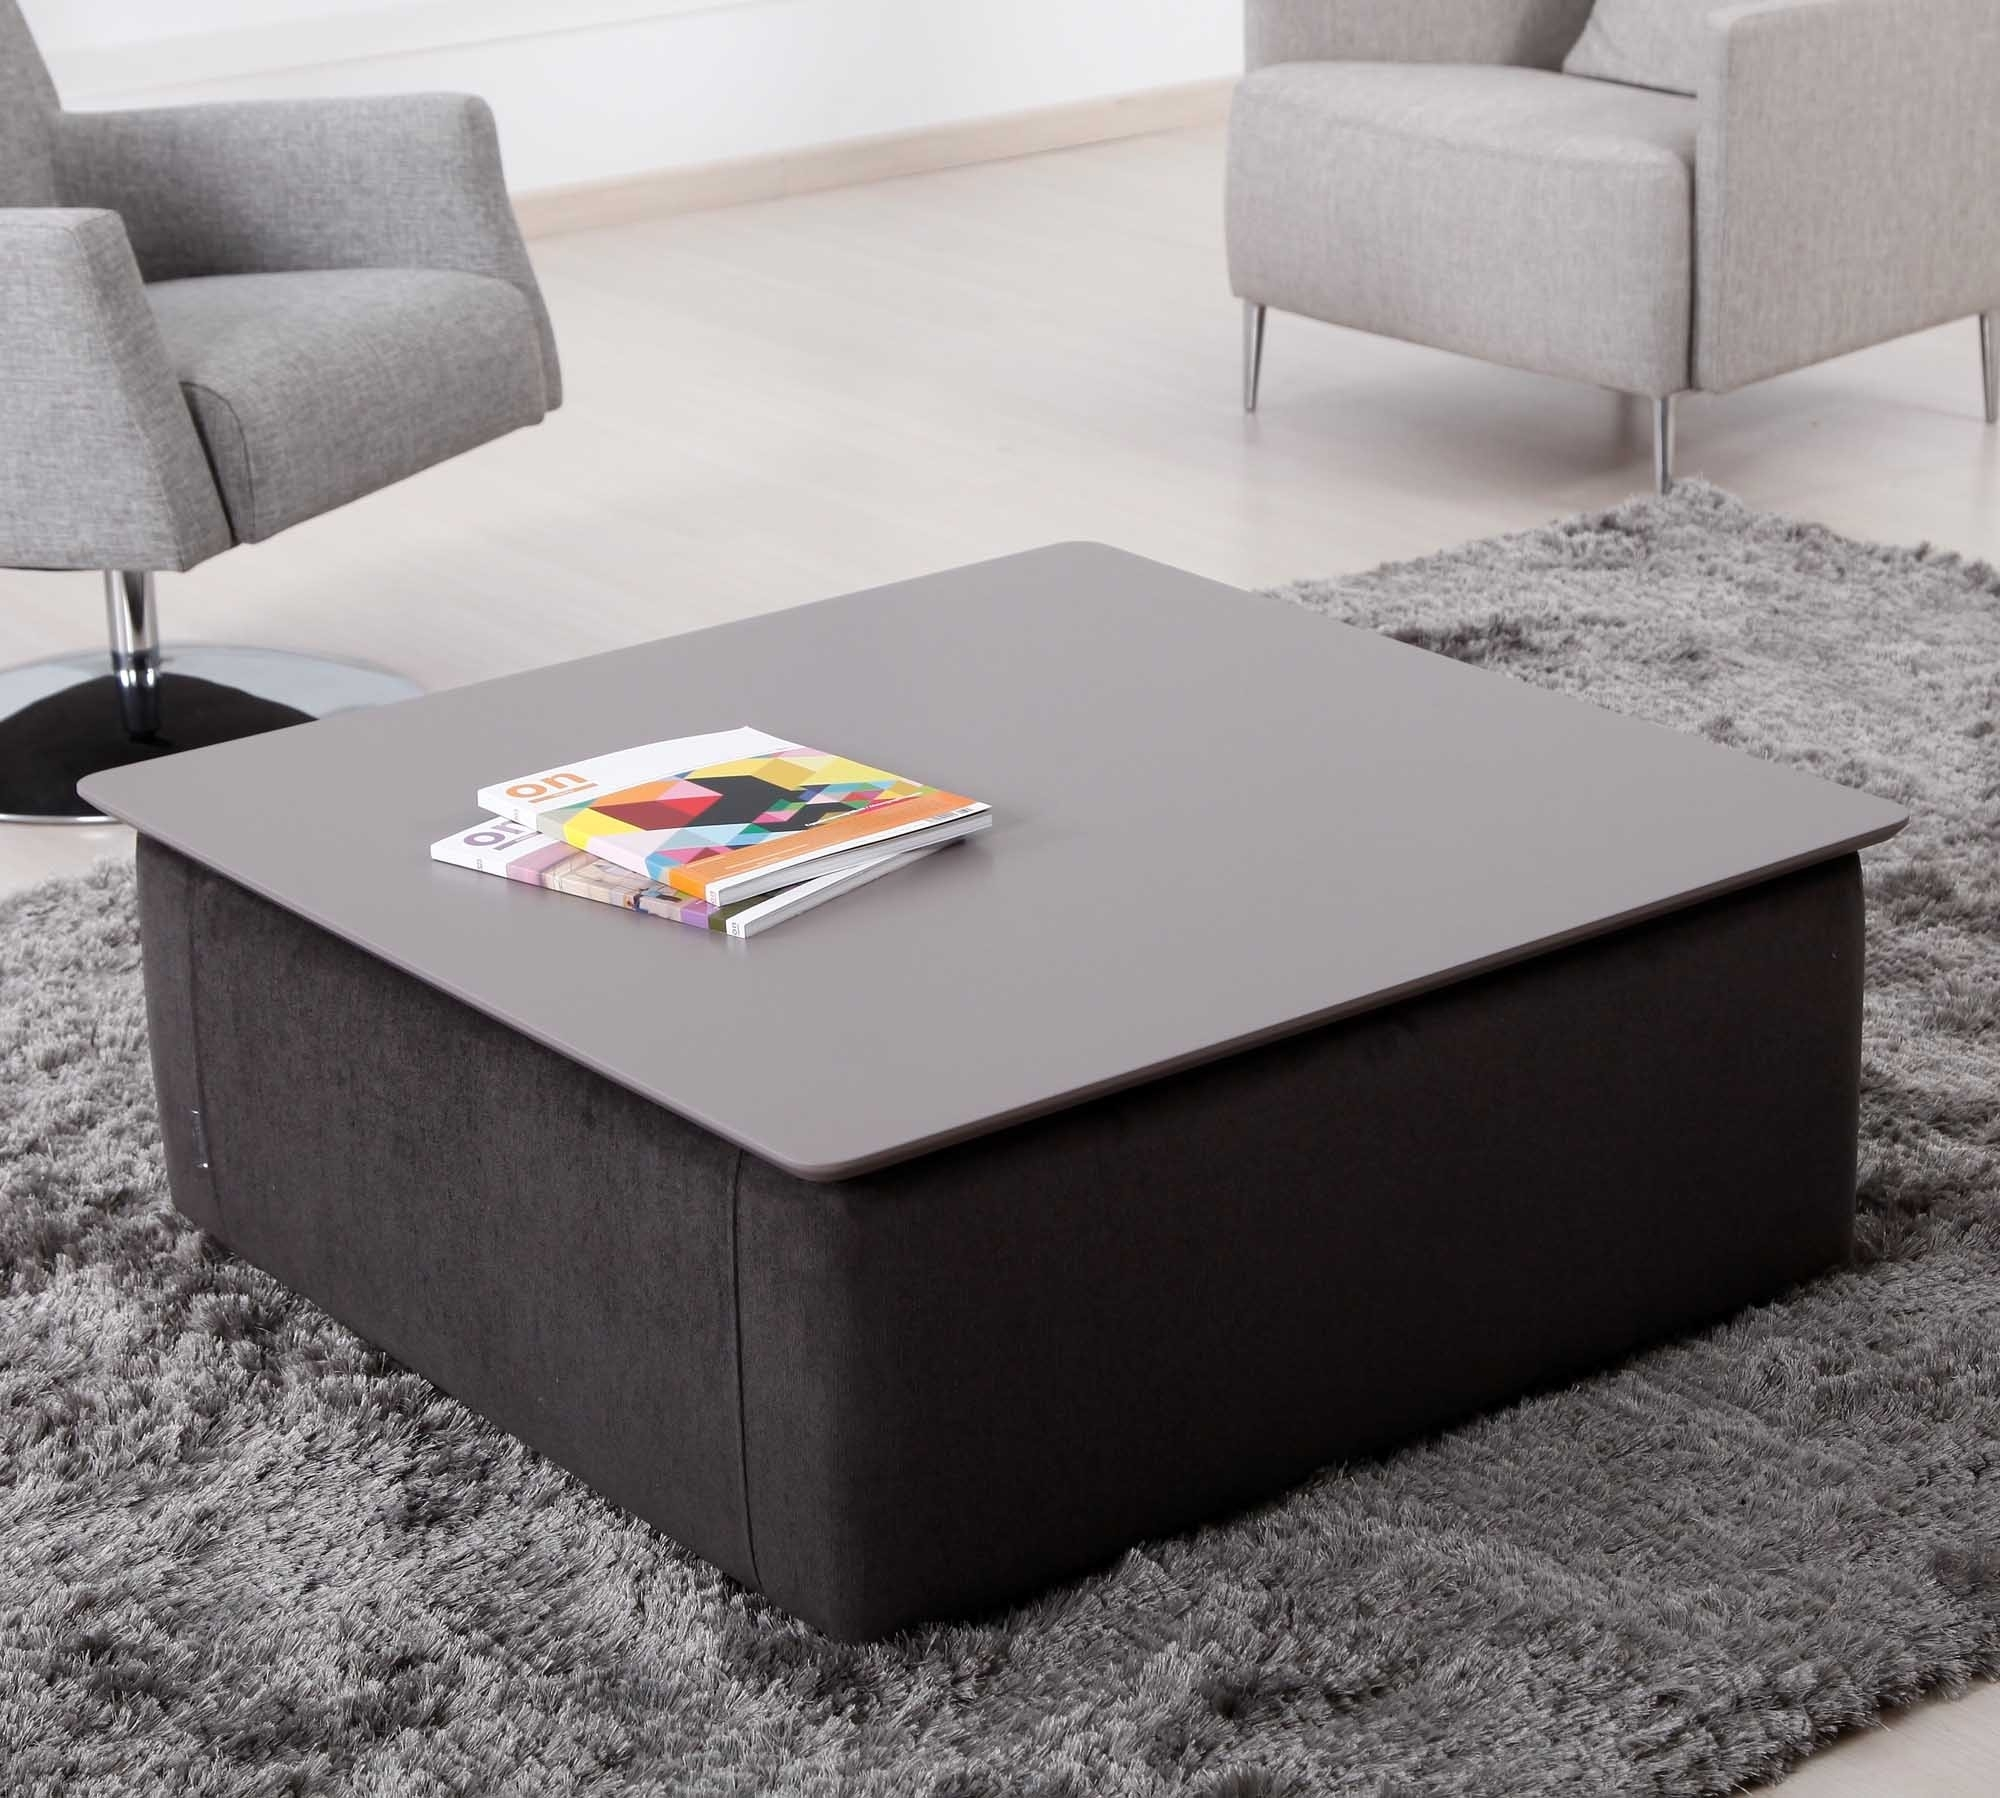 Adam 96 Coffee Table | Tr Hayes - Furniture Store, Bath inside Adam Coffee Tables (Image 3 of 30)